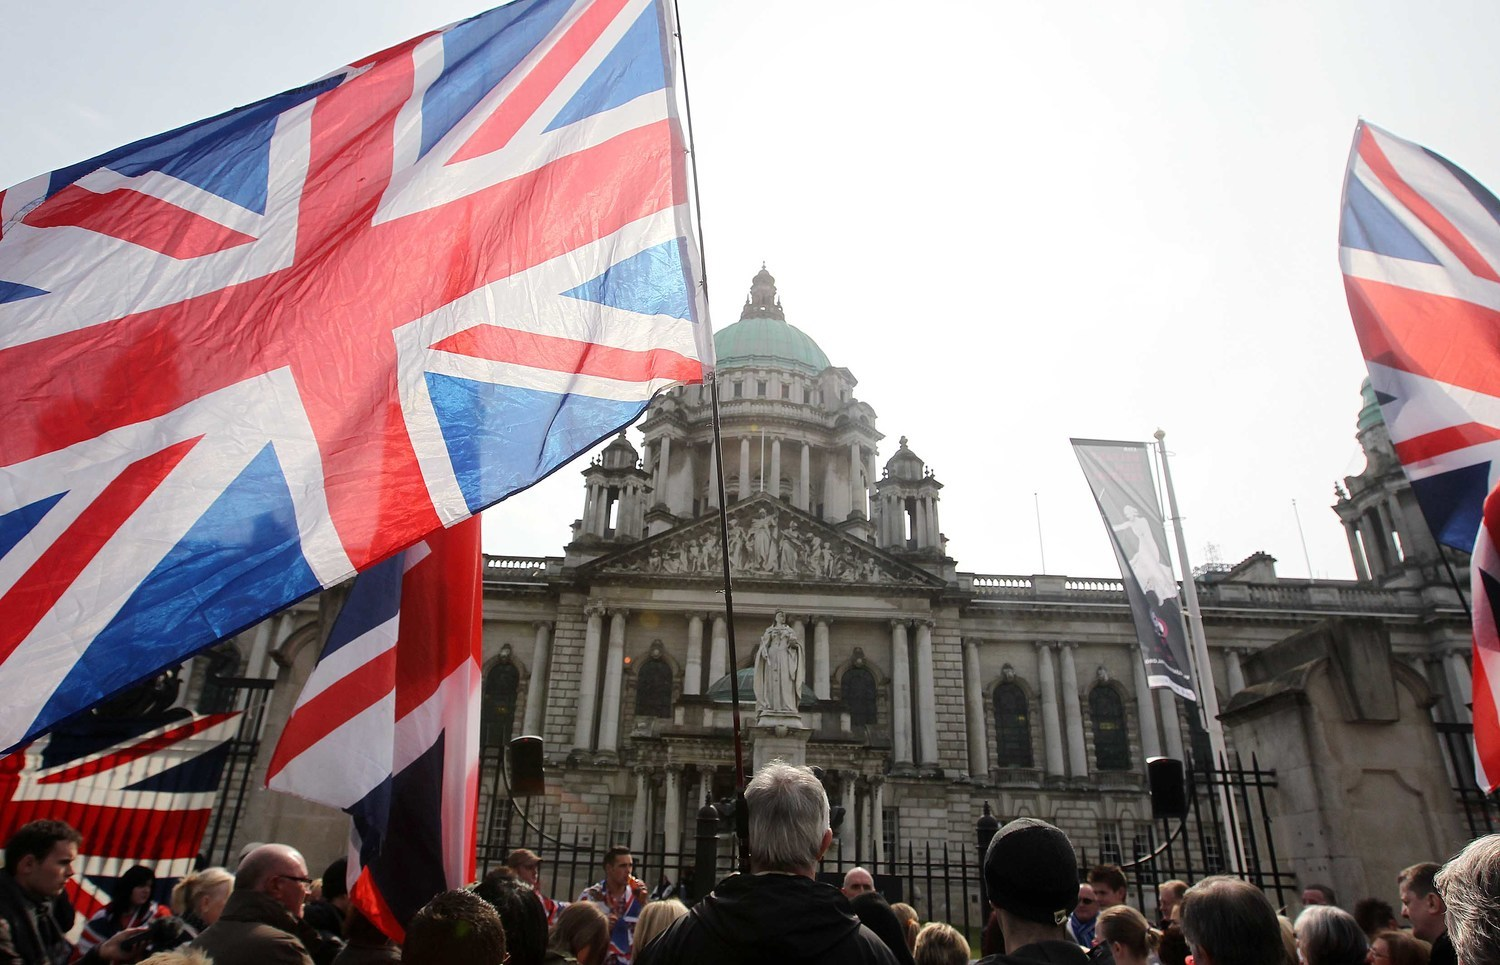 Protest over restrictions on flying Union flag over Belfast city hall